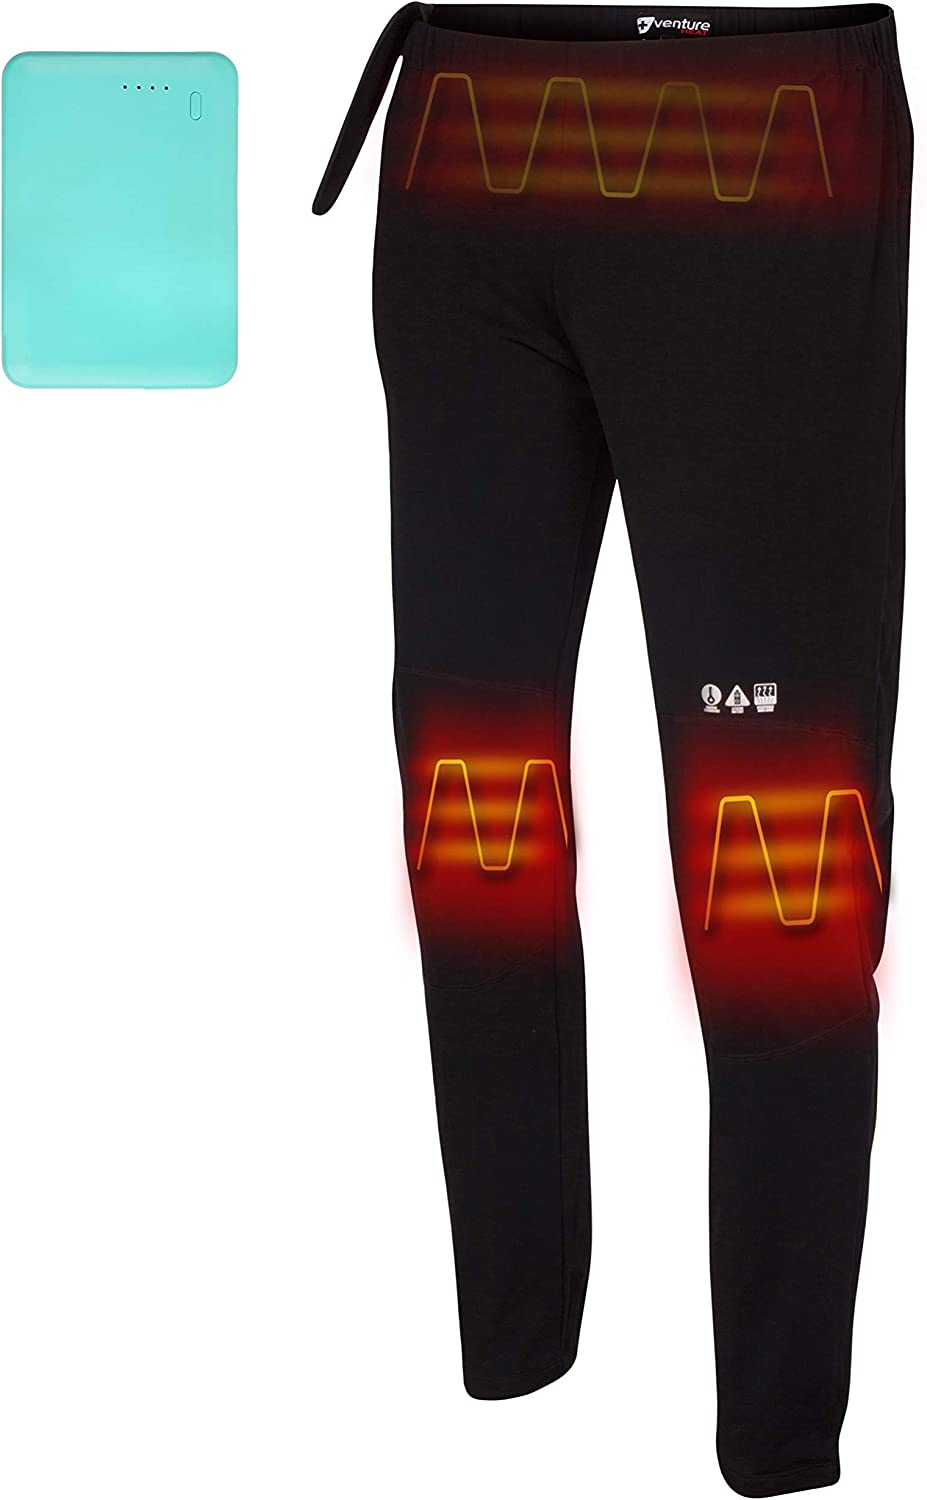 Venture Heat Heated Pants with Battery Pack - Electric Base Layer Sweats Long John for Men Women, Rechargeable, Quest